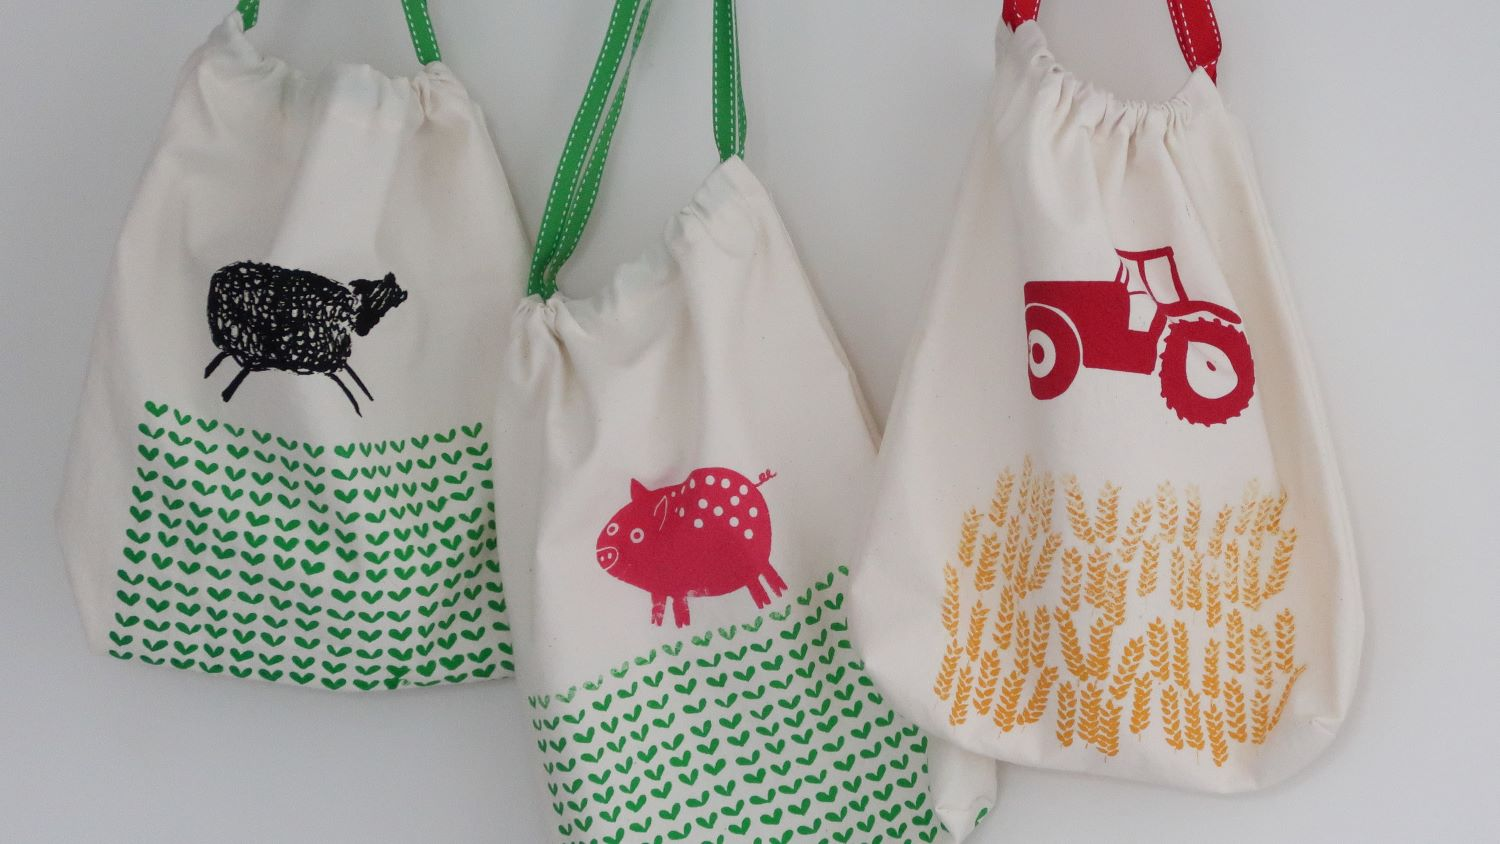 3 screen printed drawstring bags with sheep, pig and tractor